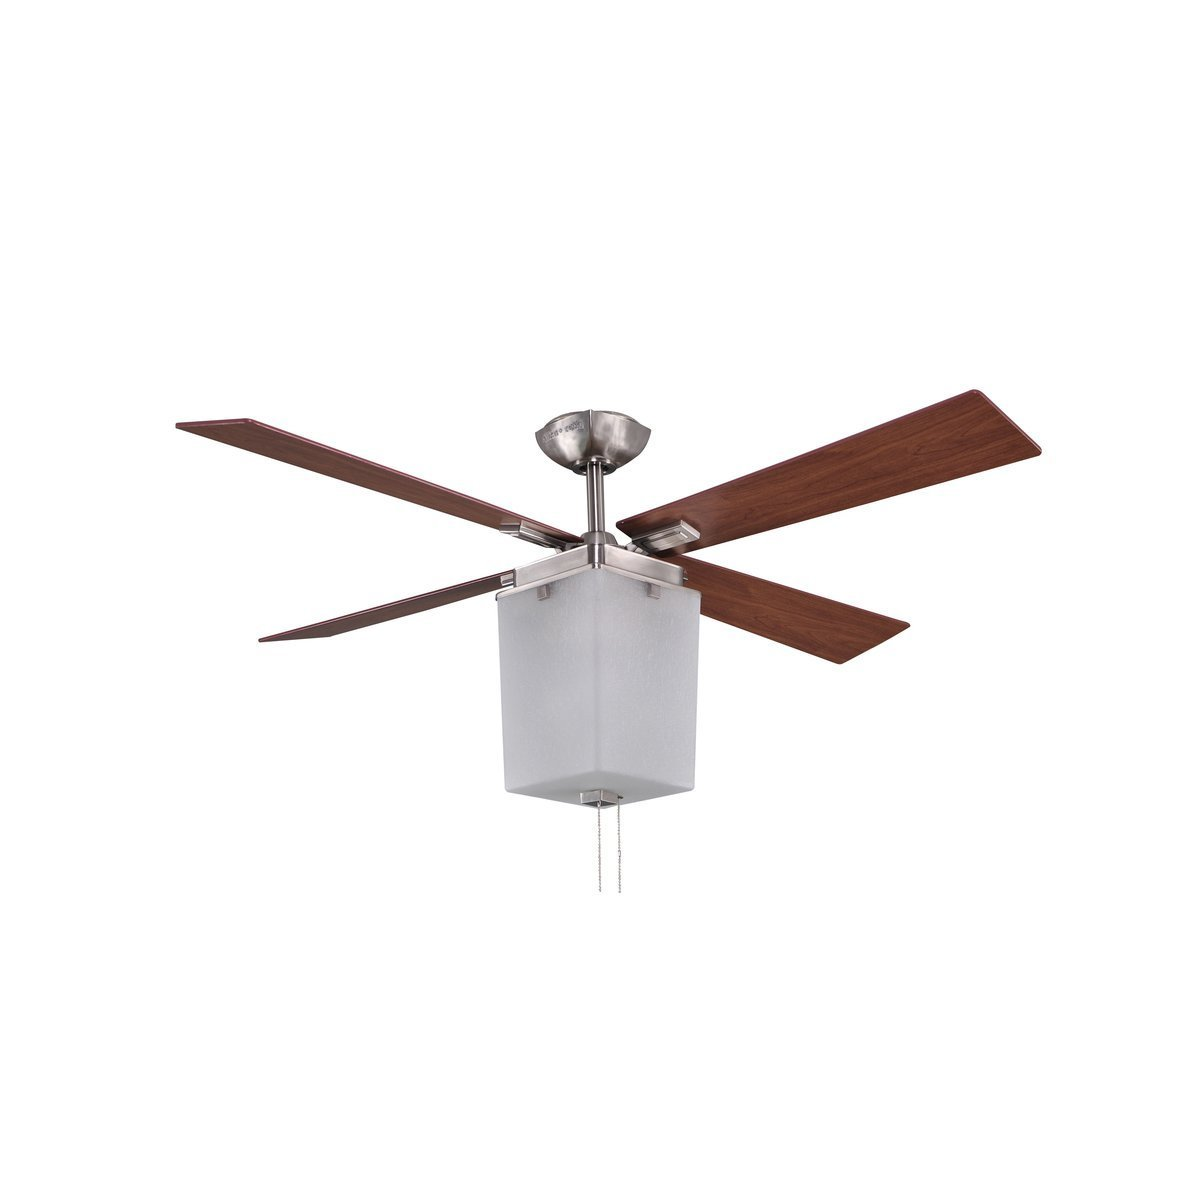 Allen Roth Ceiling Fan Remote Control Shelly Lighting